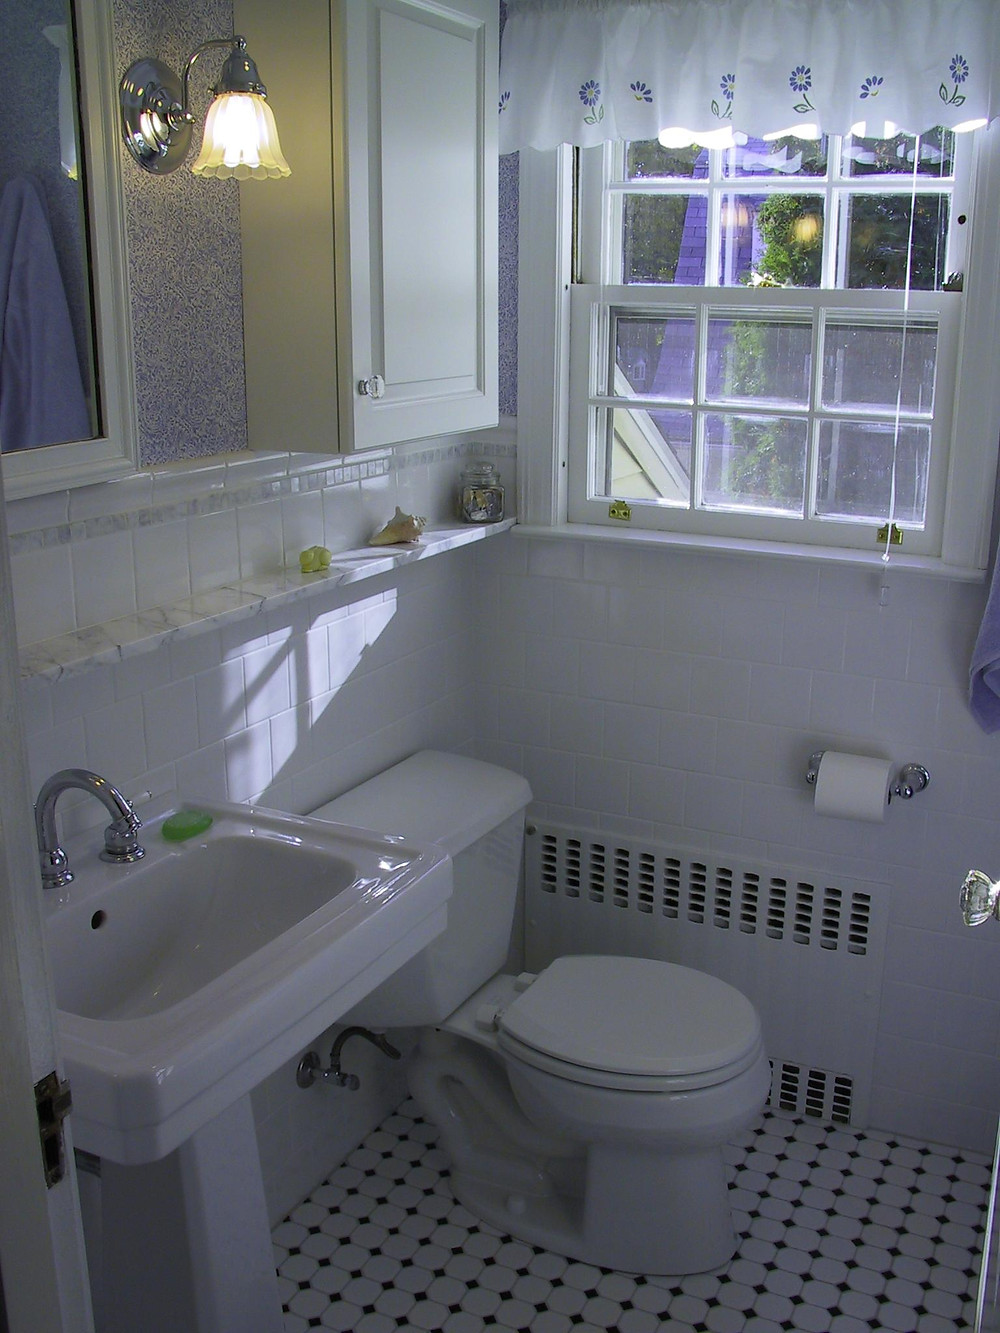 Blue and white calming bathroom tiled walls